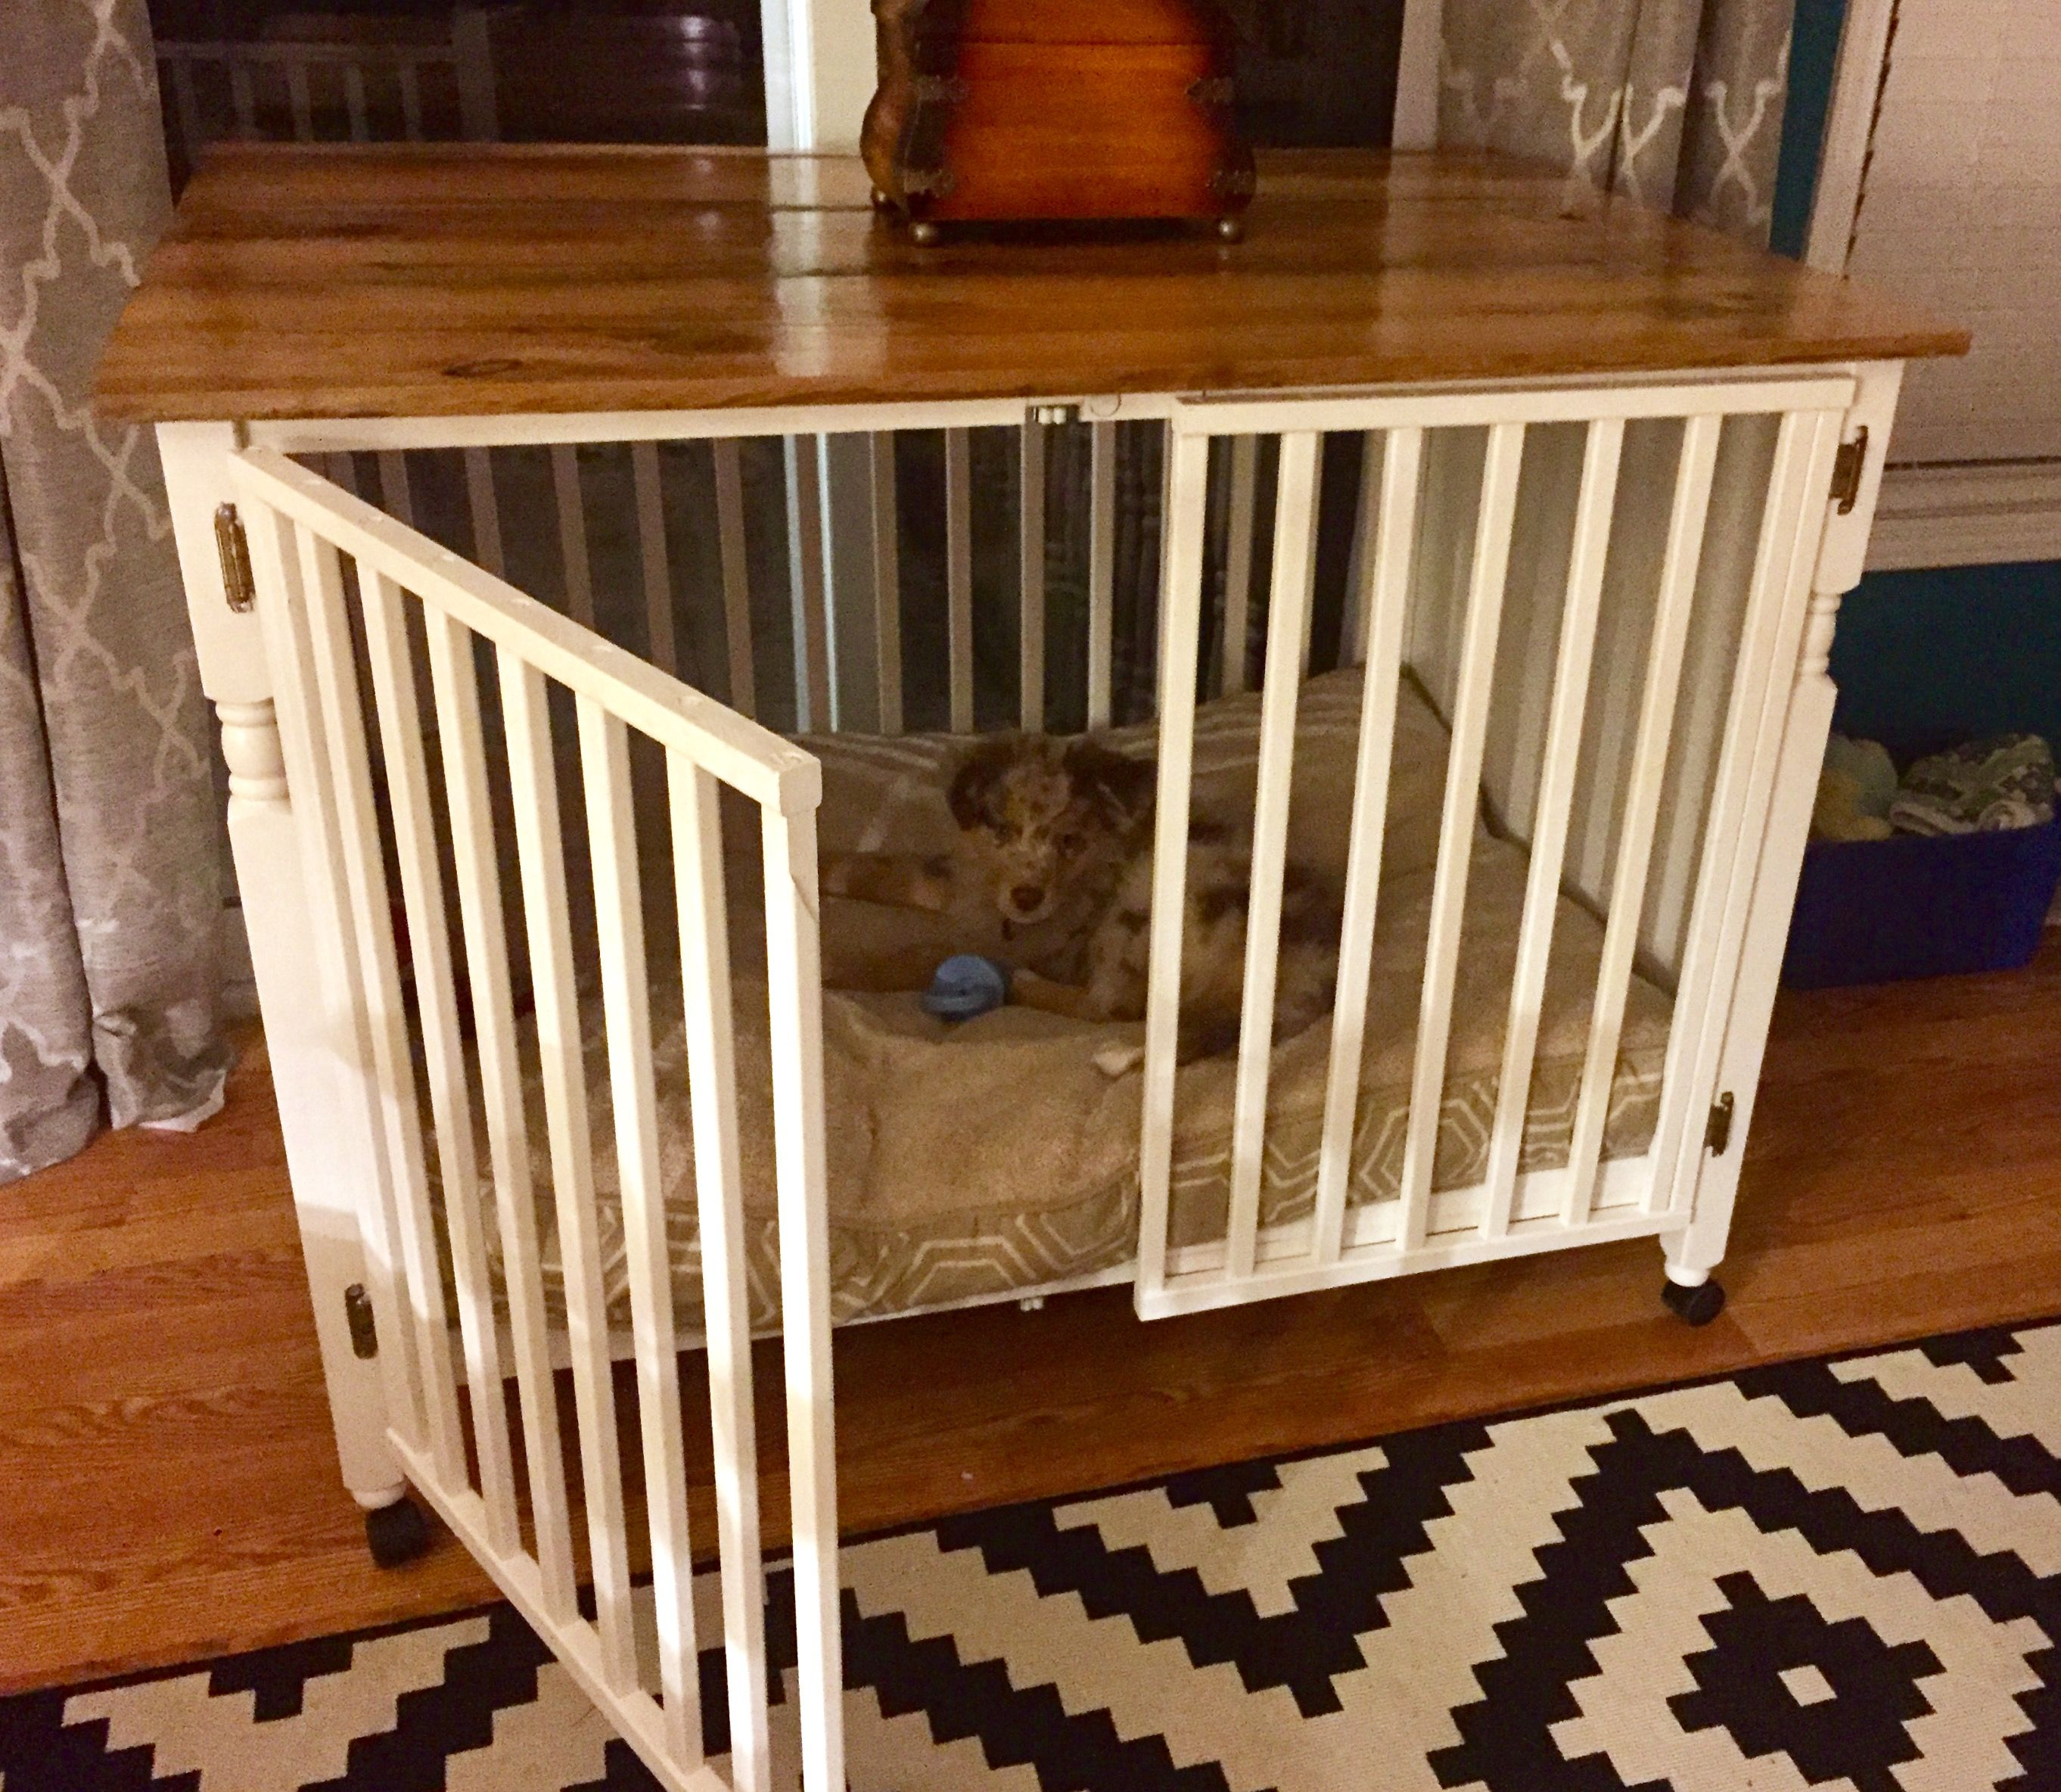 Repurposed Crib To Dog Crate With Barn Board Table Top.